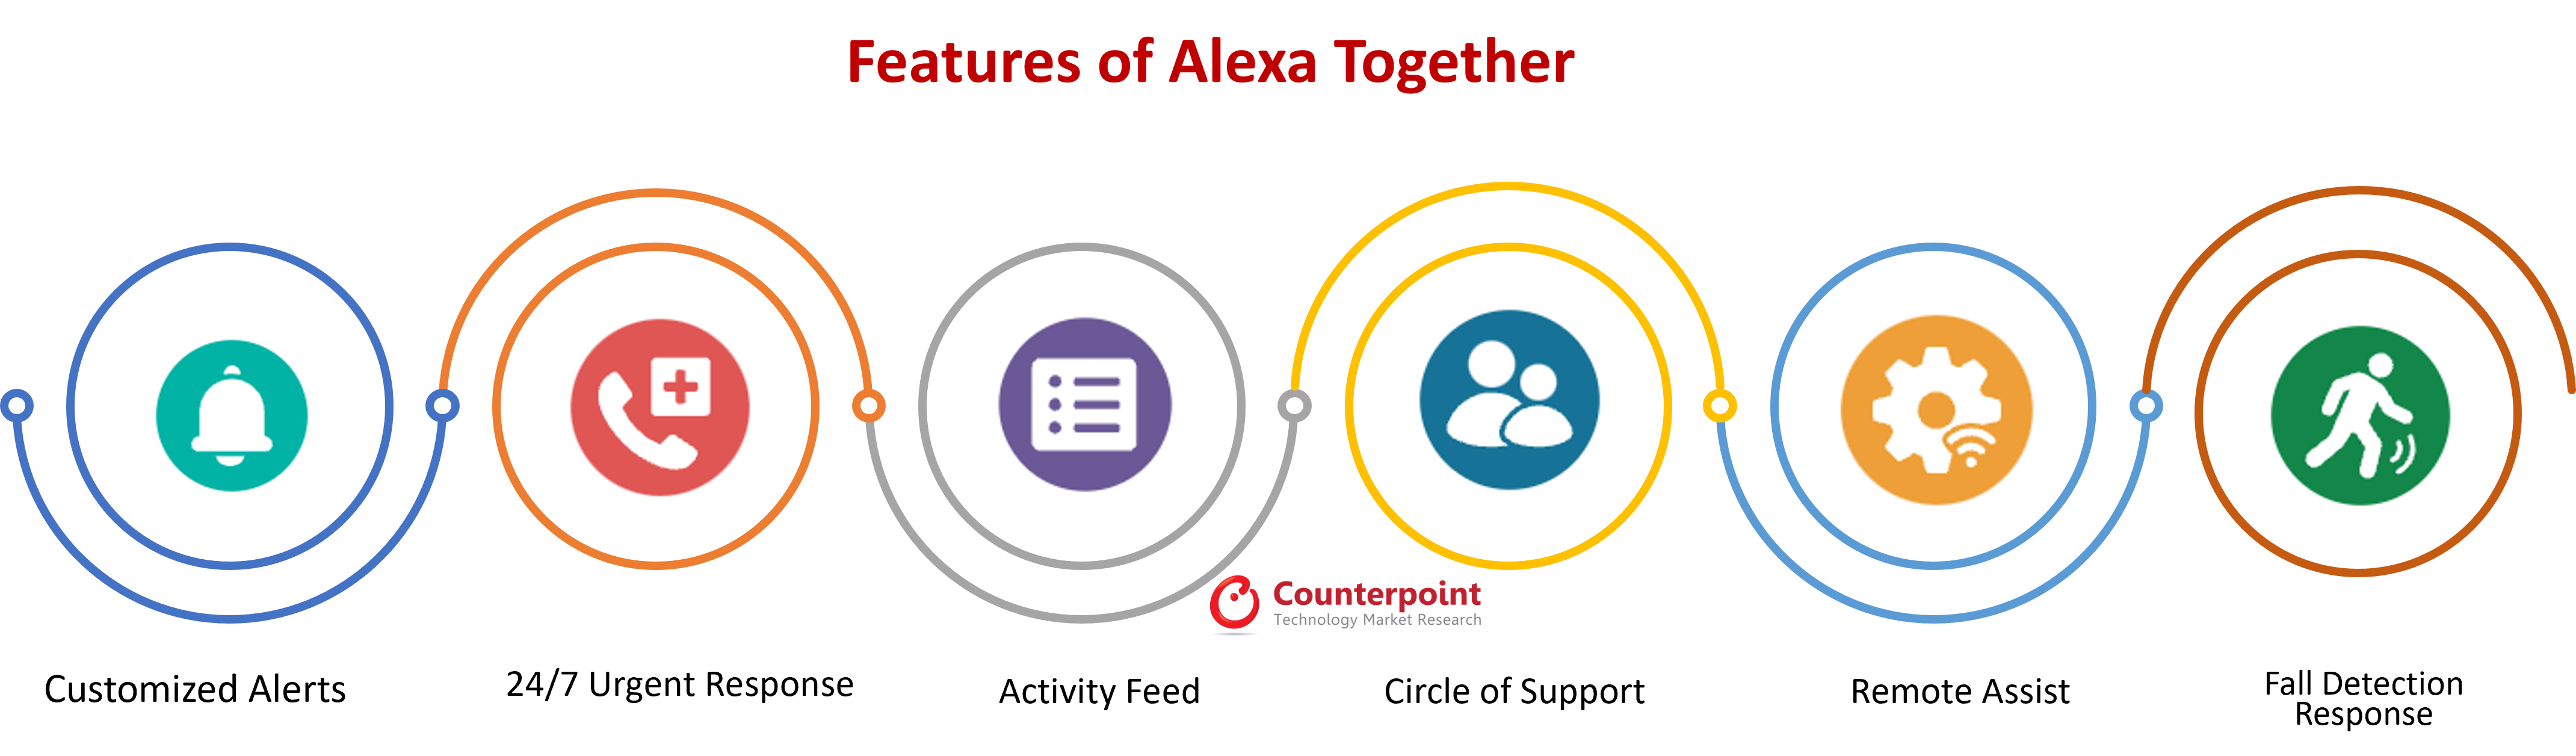 counterpoint Features of Alexa Together